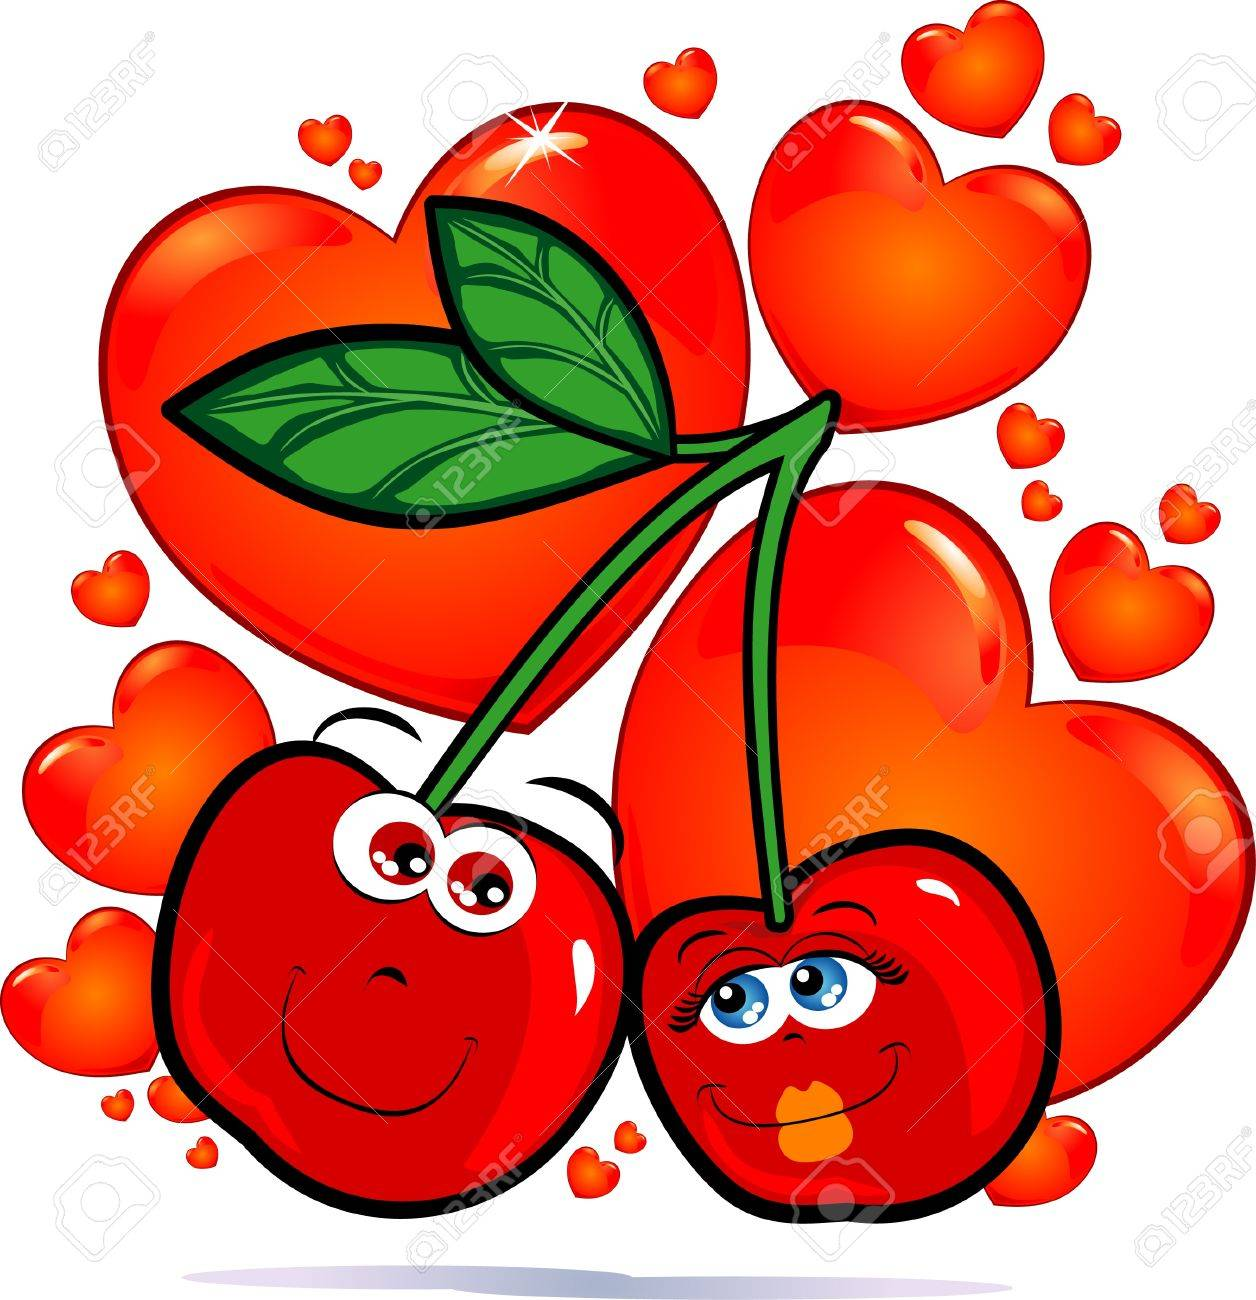 Cherries in love, vector image Stock Vector - 9483814